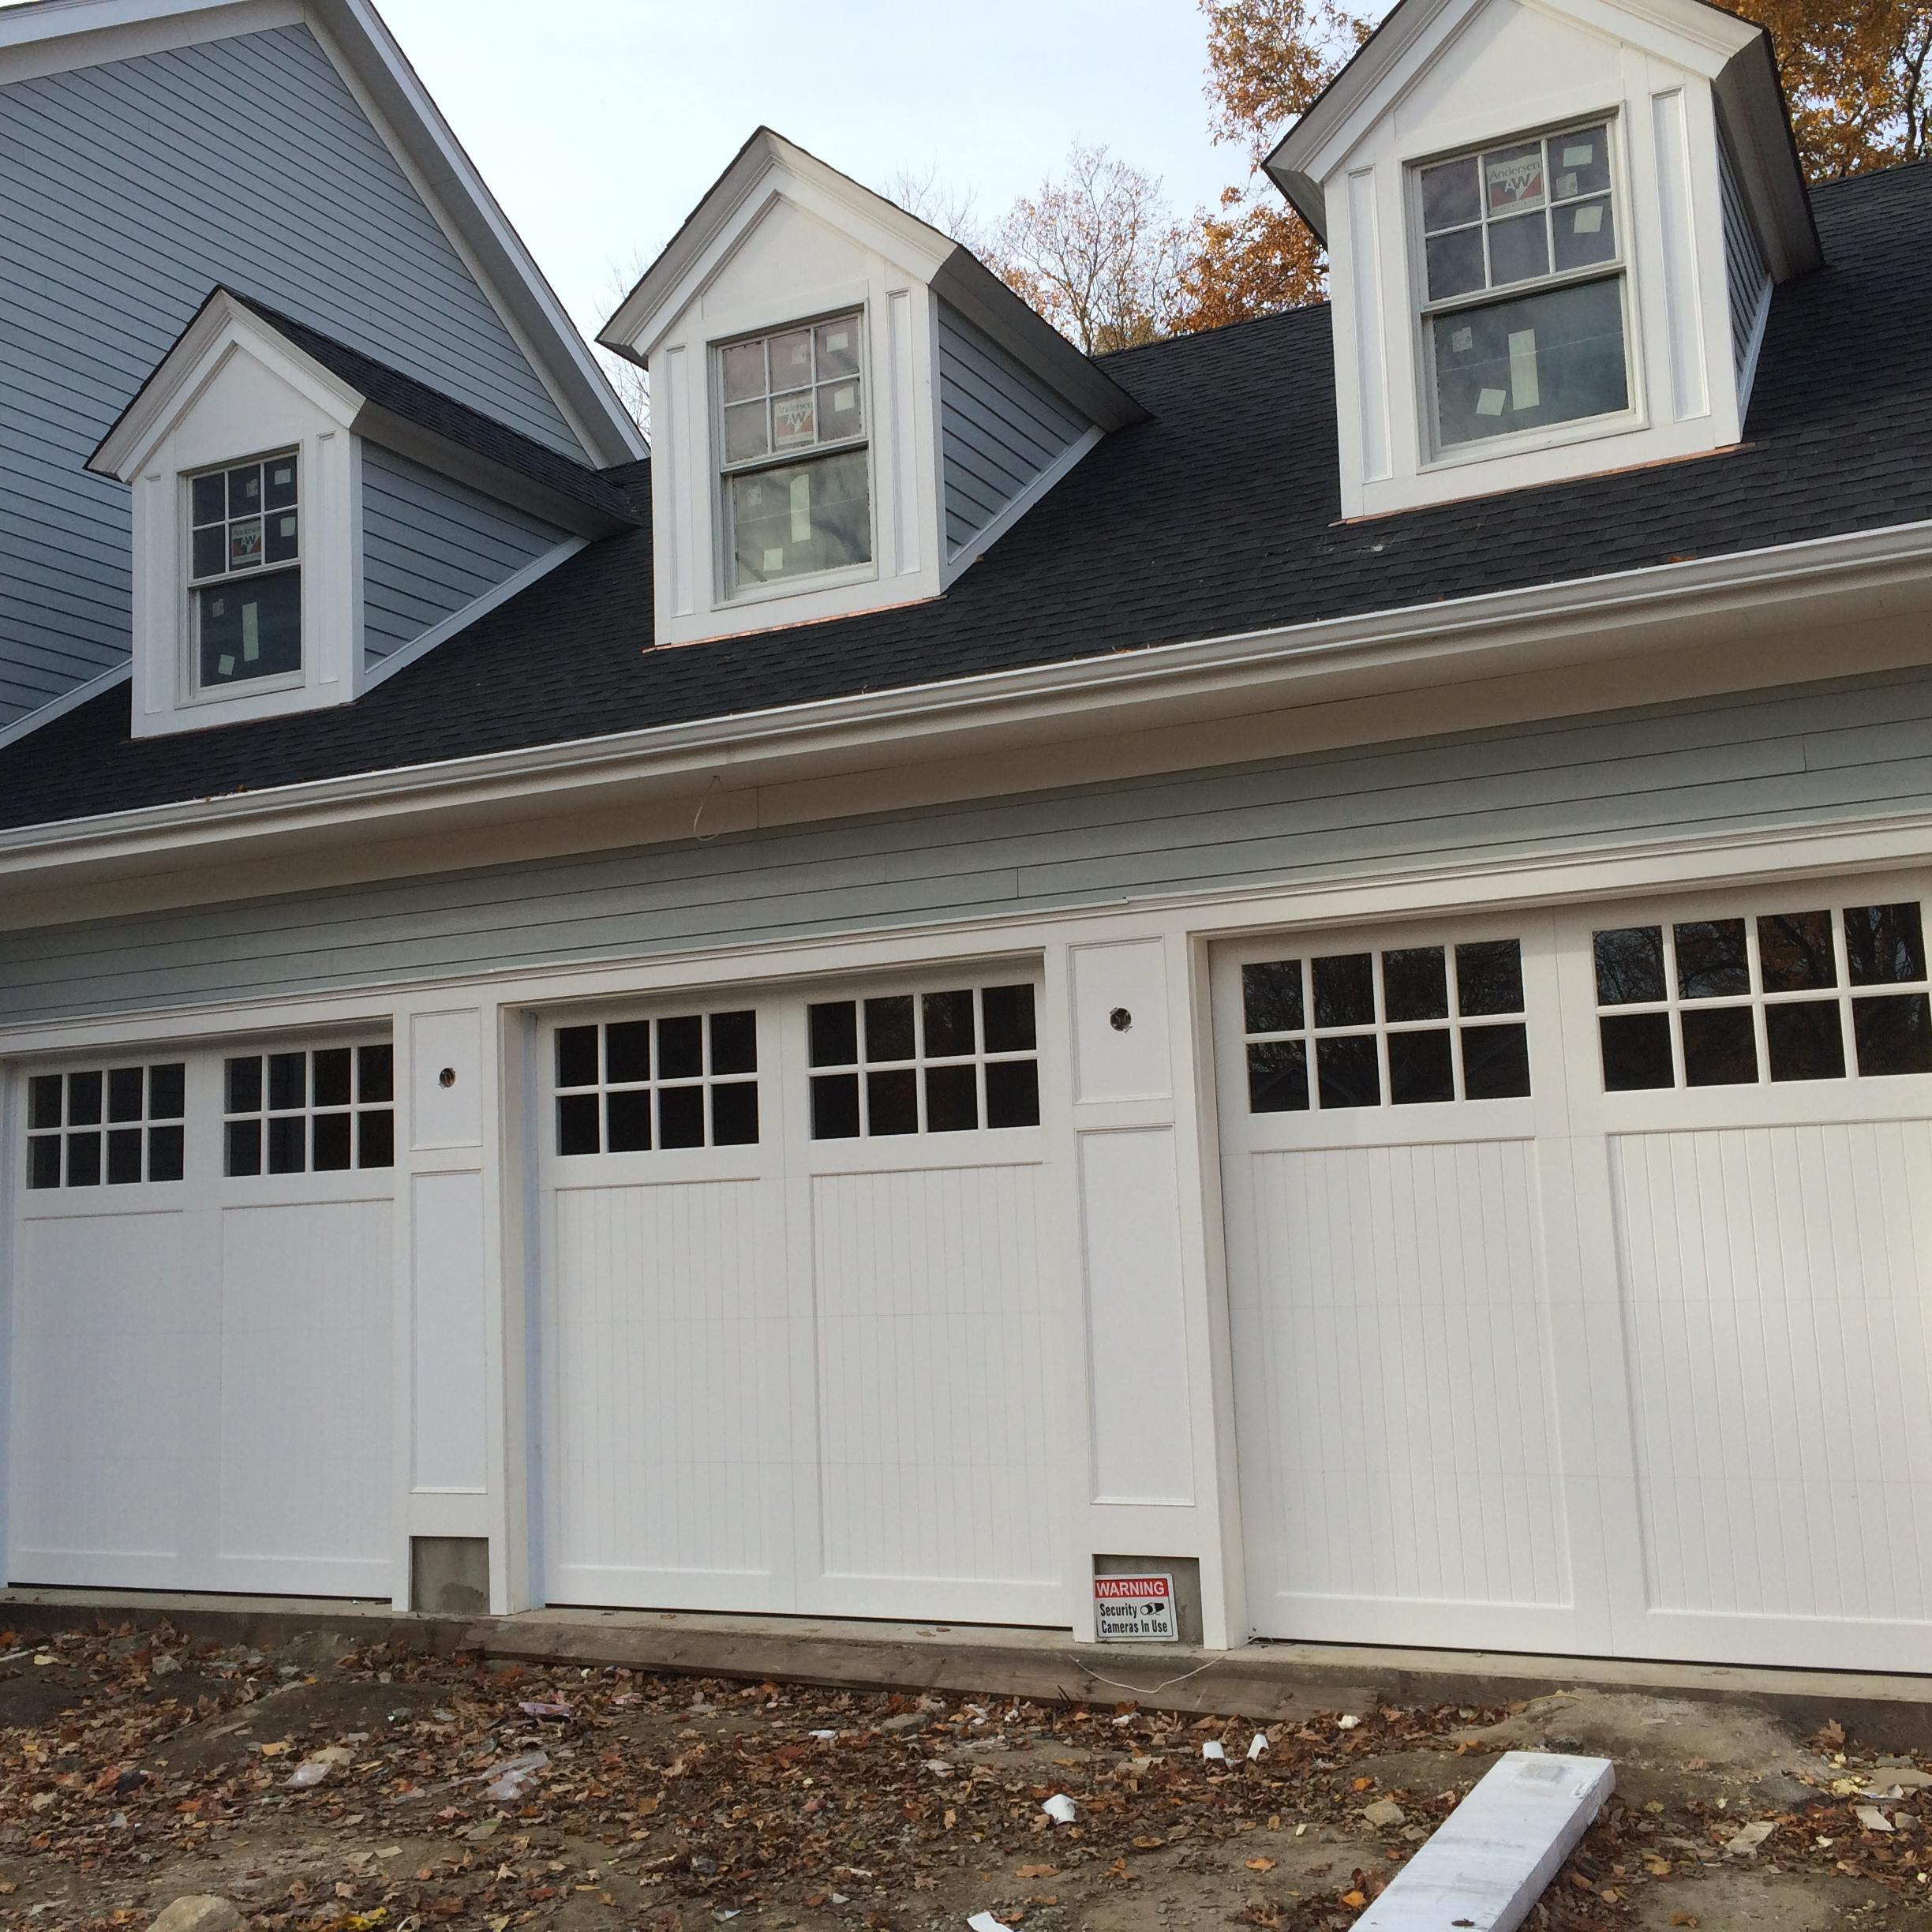 2448 #5D4C3B Overhead Doors Solutions In West Haven CT 06516 ChamberofCommerce  image Overhead Garage Doors Residential Reviews 37132448